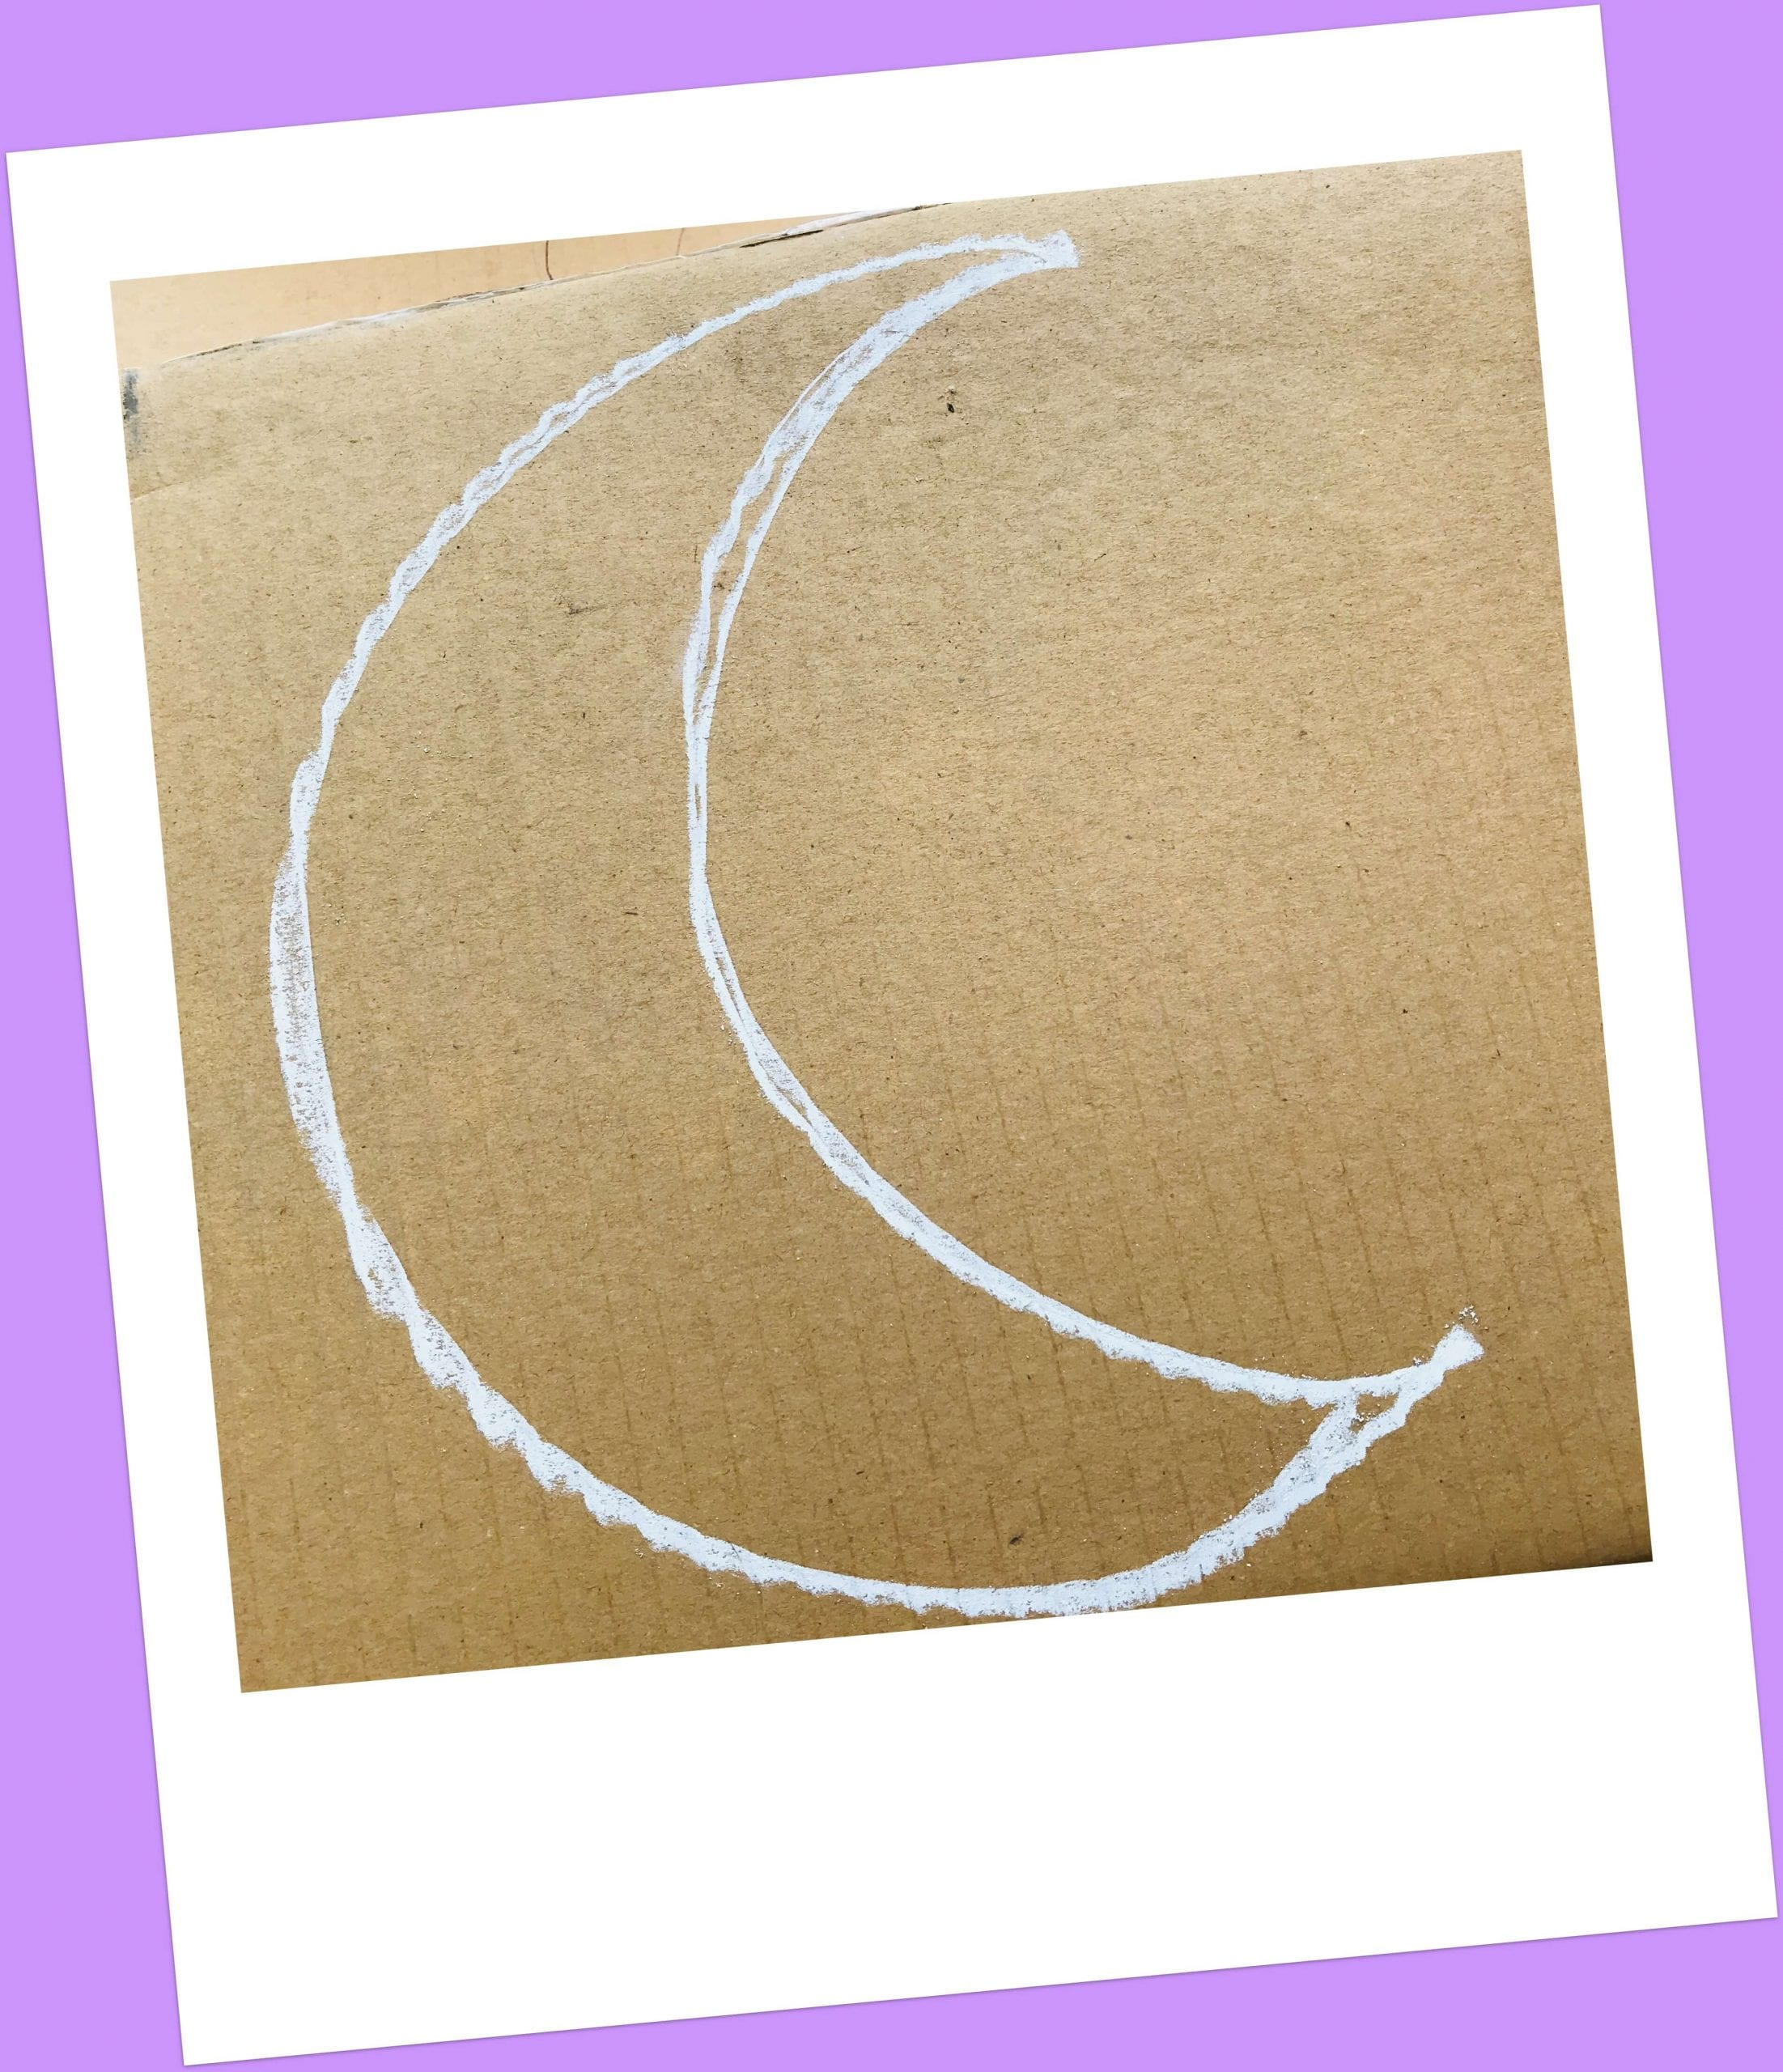 moon drawn on cardboard